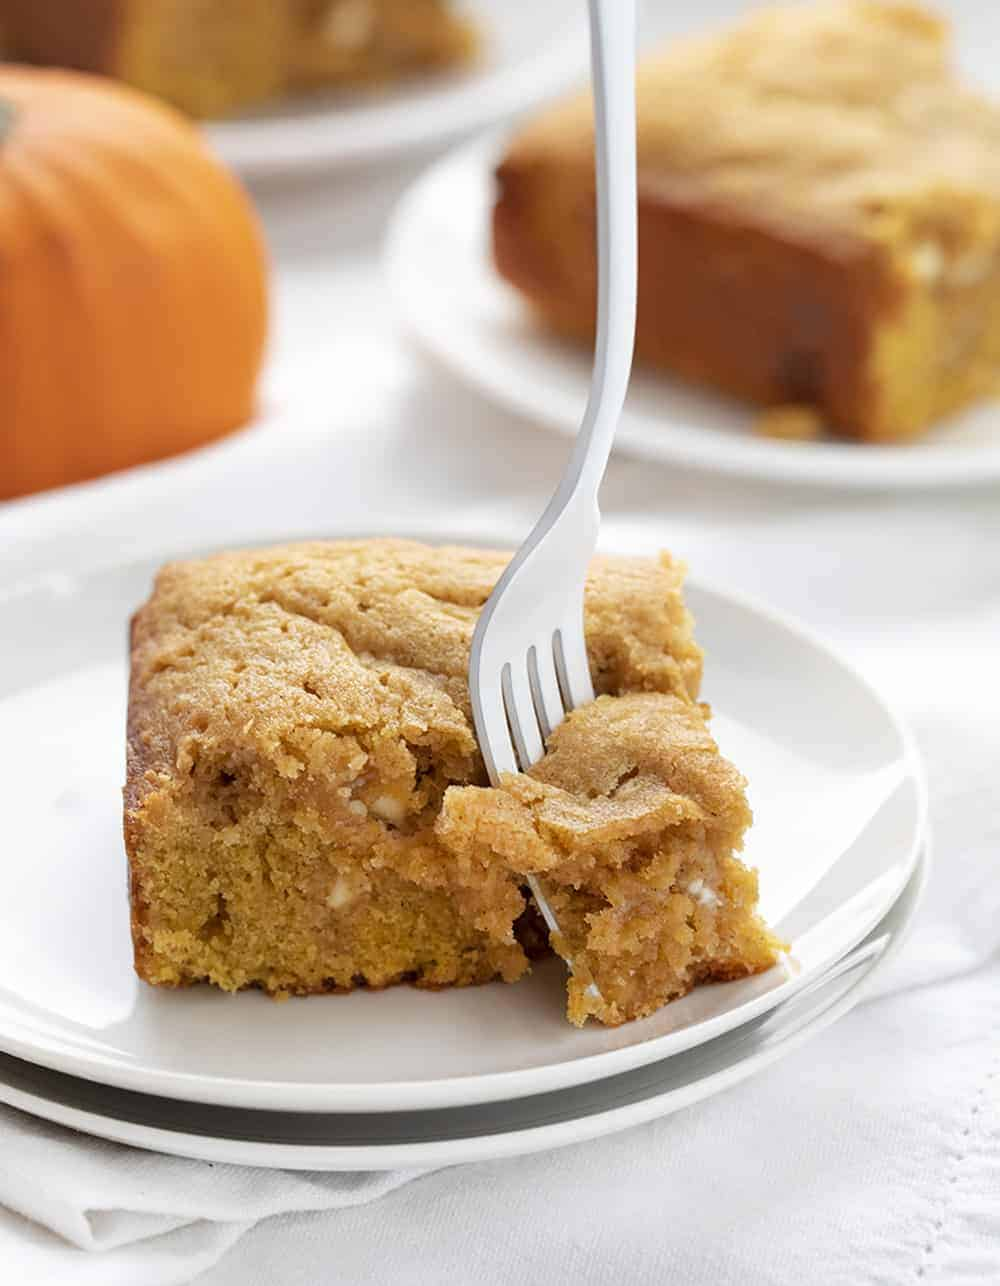 Fork Taking a Bite of Pumpkin Spice Snack Cake